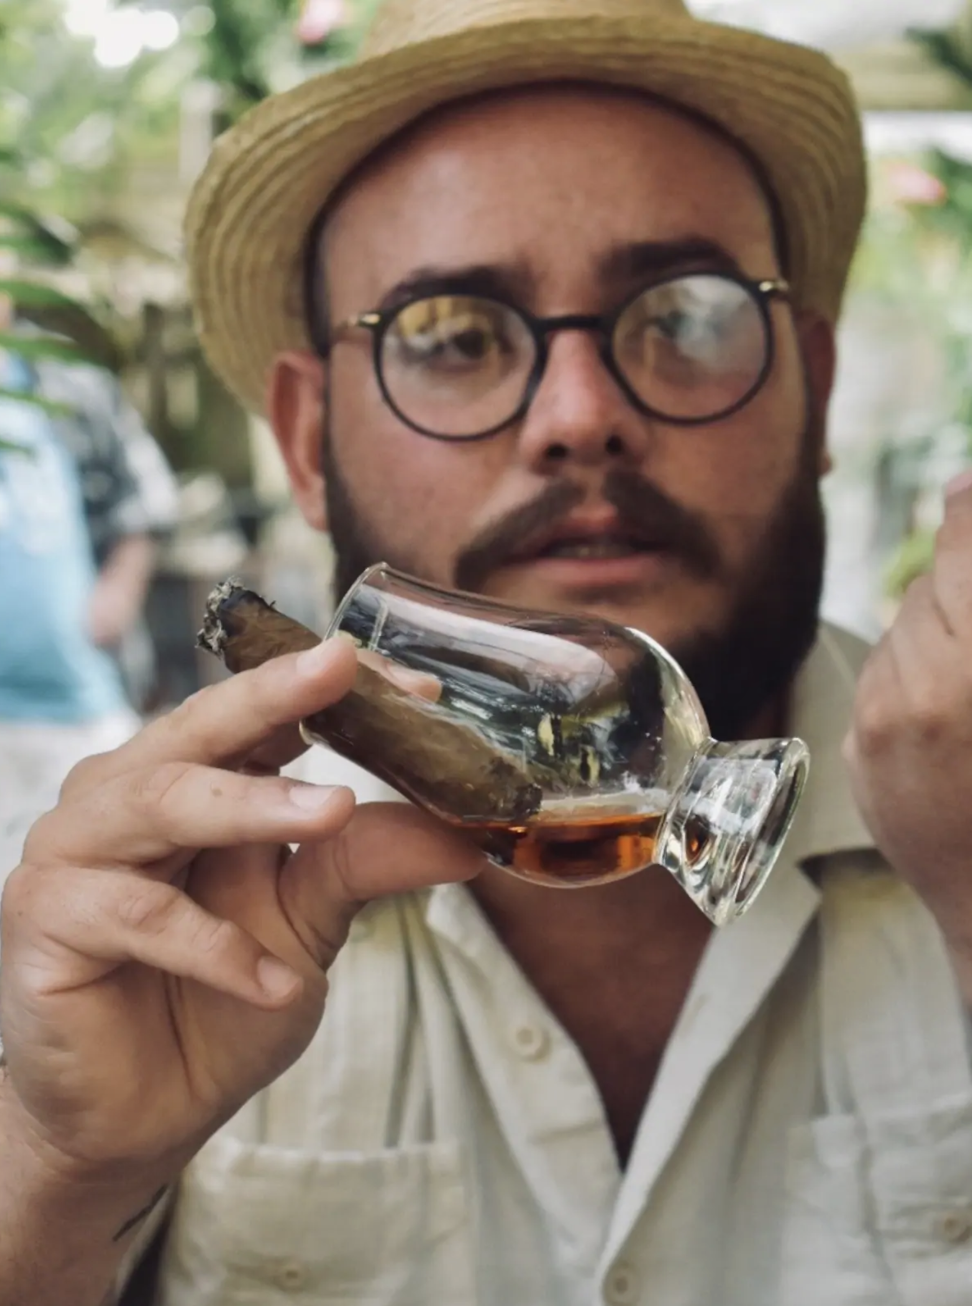 A man in glasses and straw hat looks off camera; a cigar and small cup of rum dangle from his hand in the center of the frame